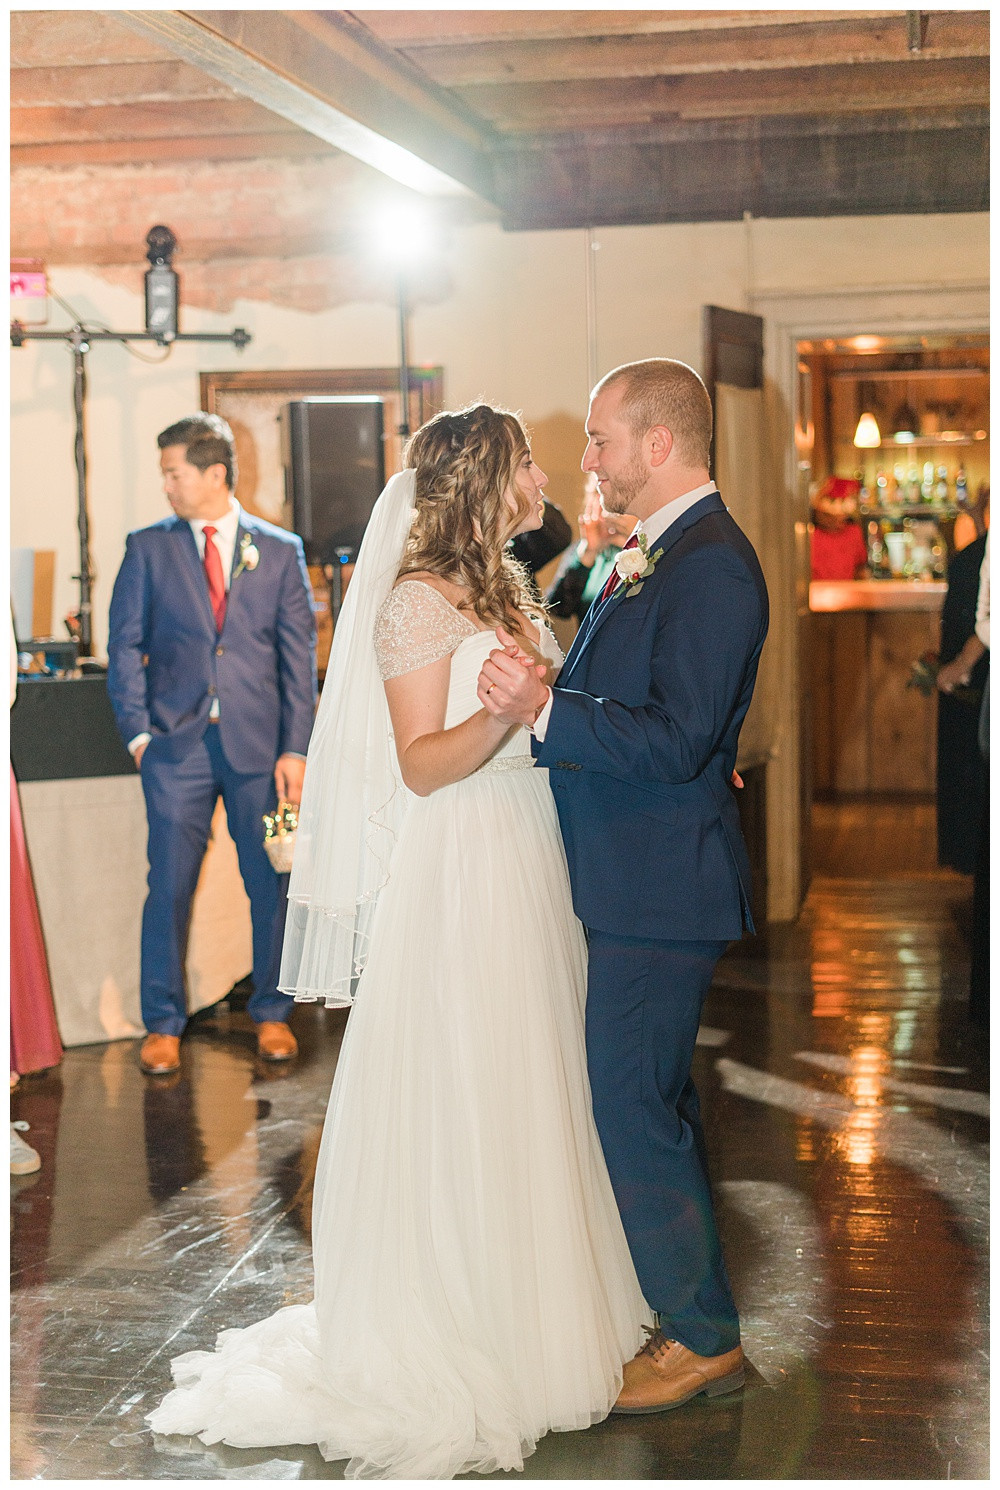 winter wedding, Kyle house, Virginia wedding, Austin & Austin Photography, first dance